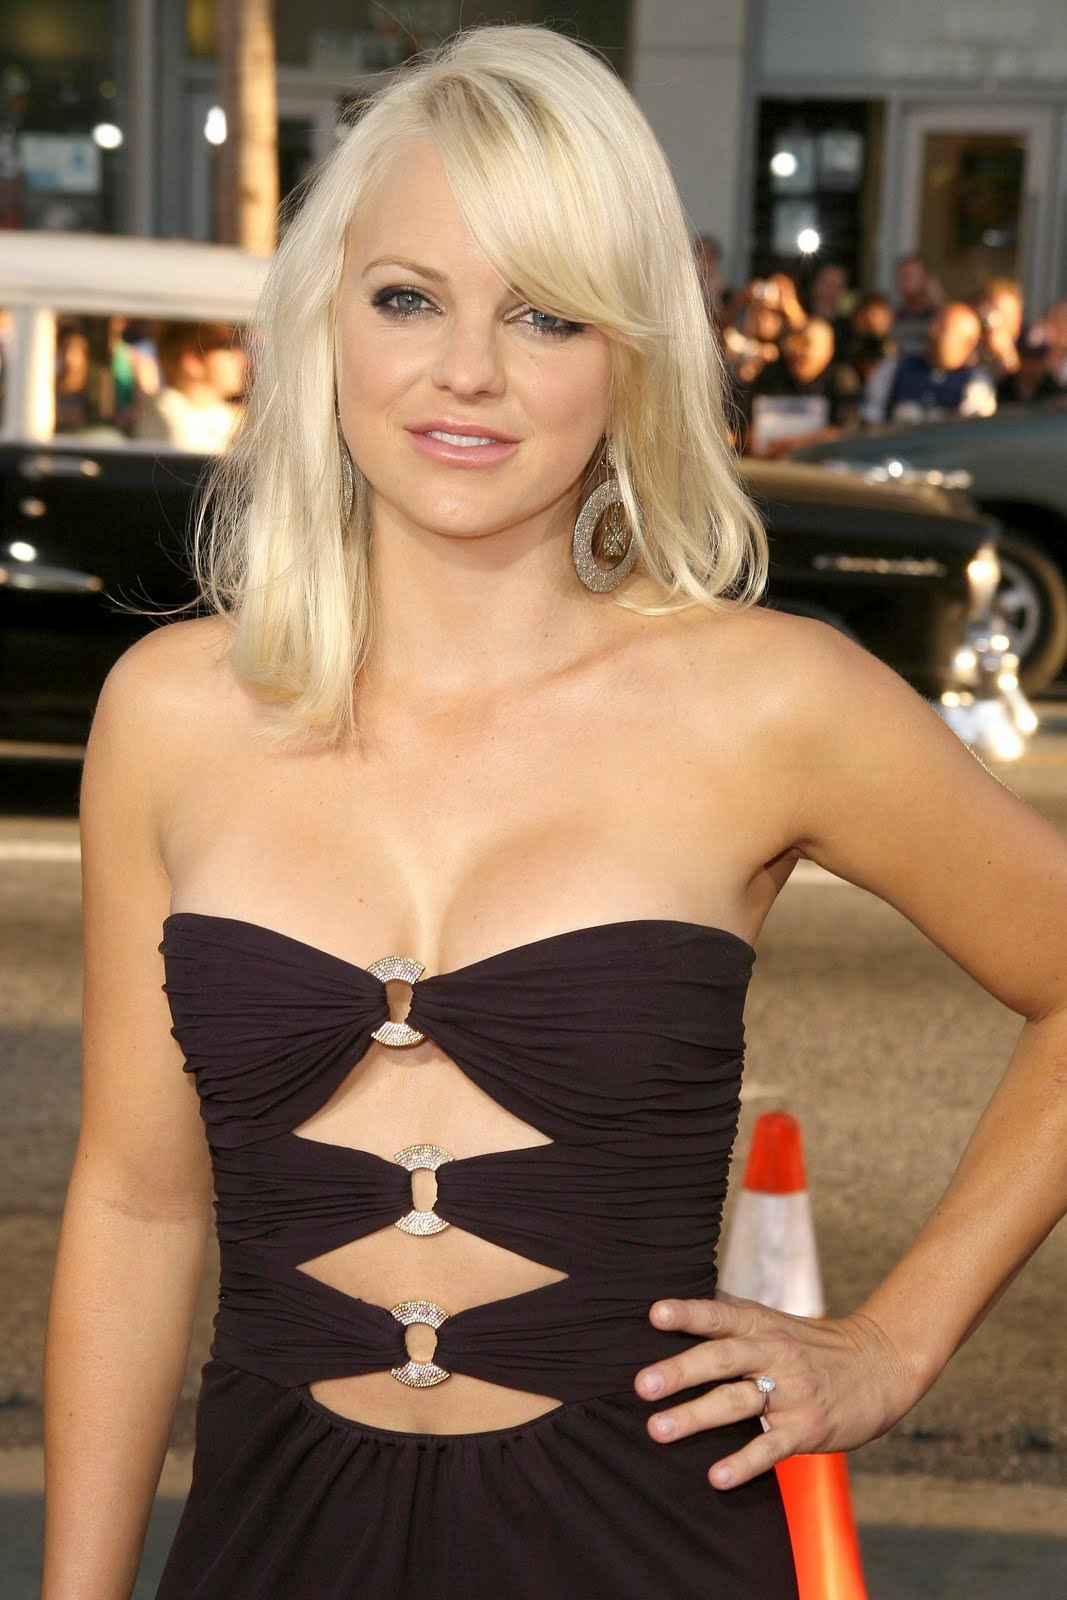 Anna Faris Measurements , Bra Cup, Breasts, Hips, Body Size